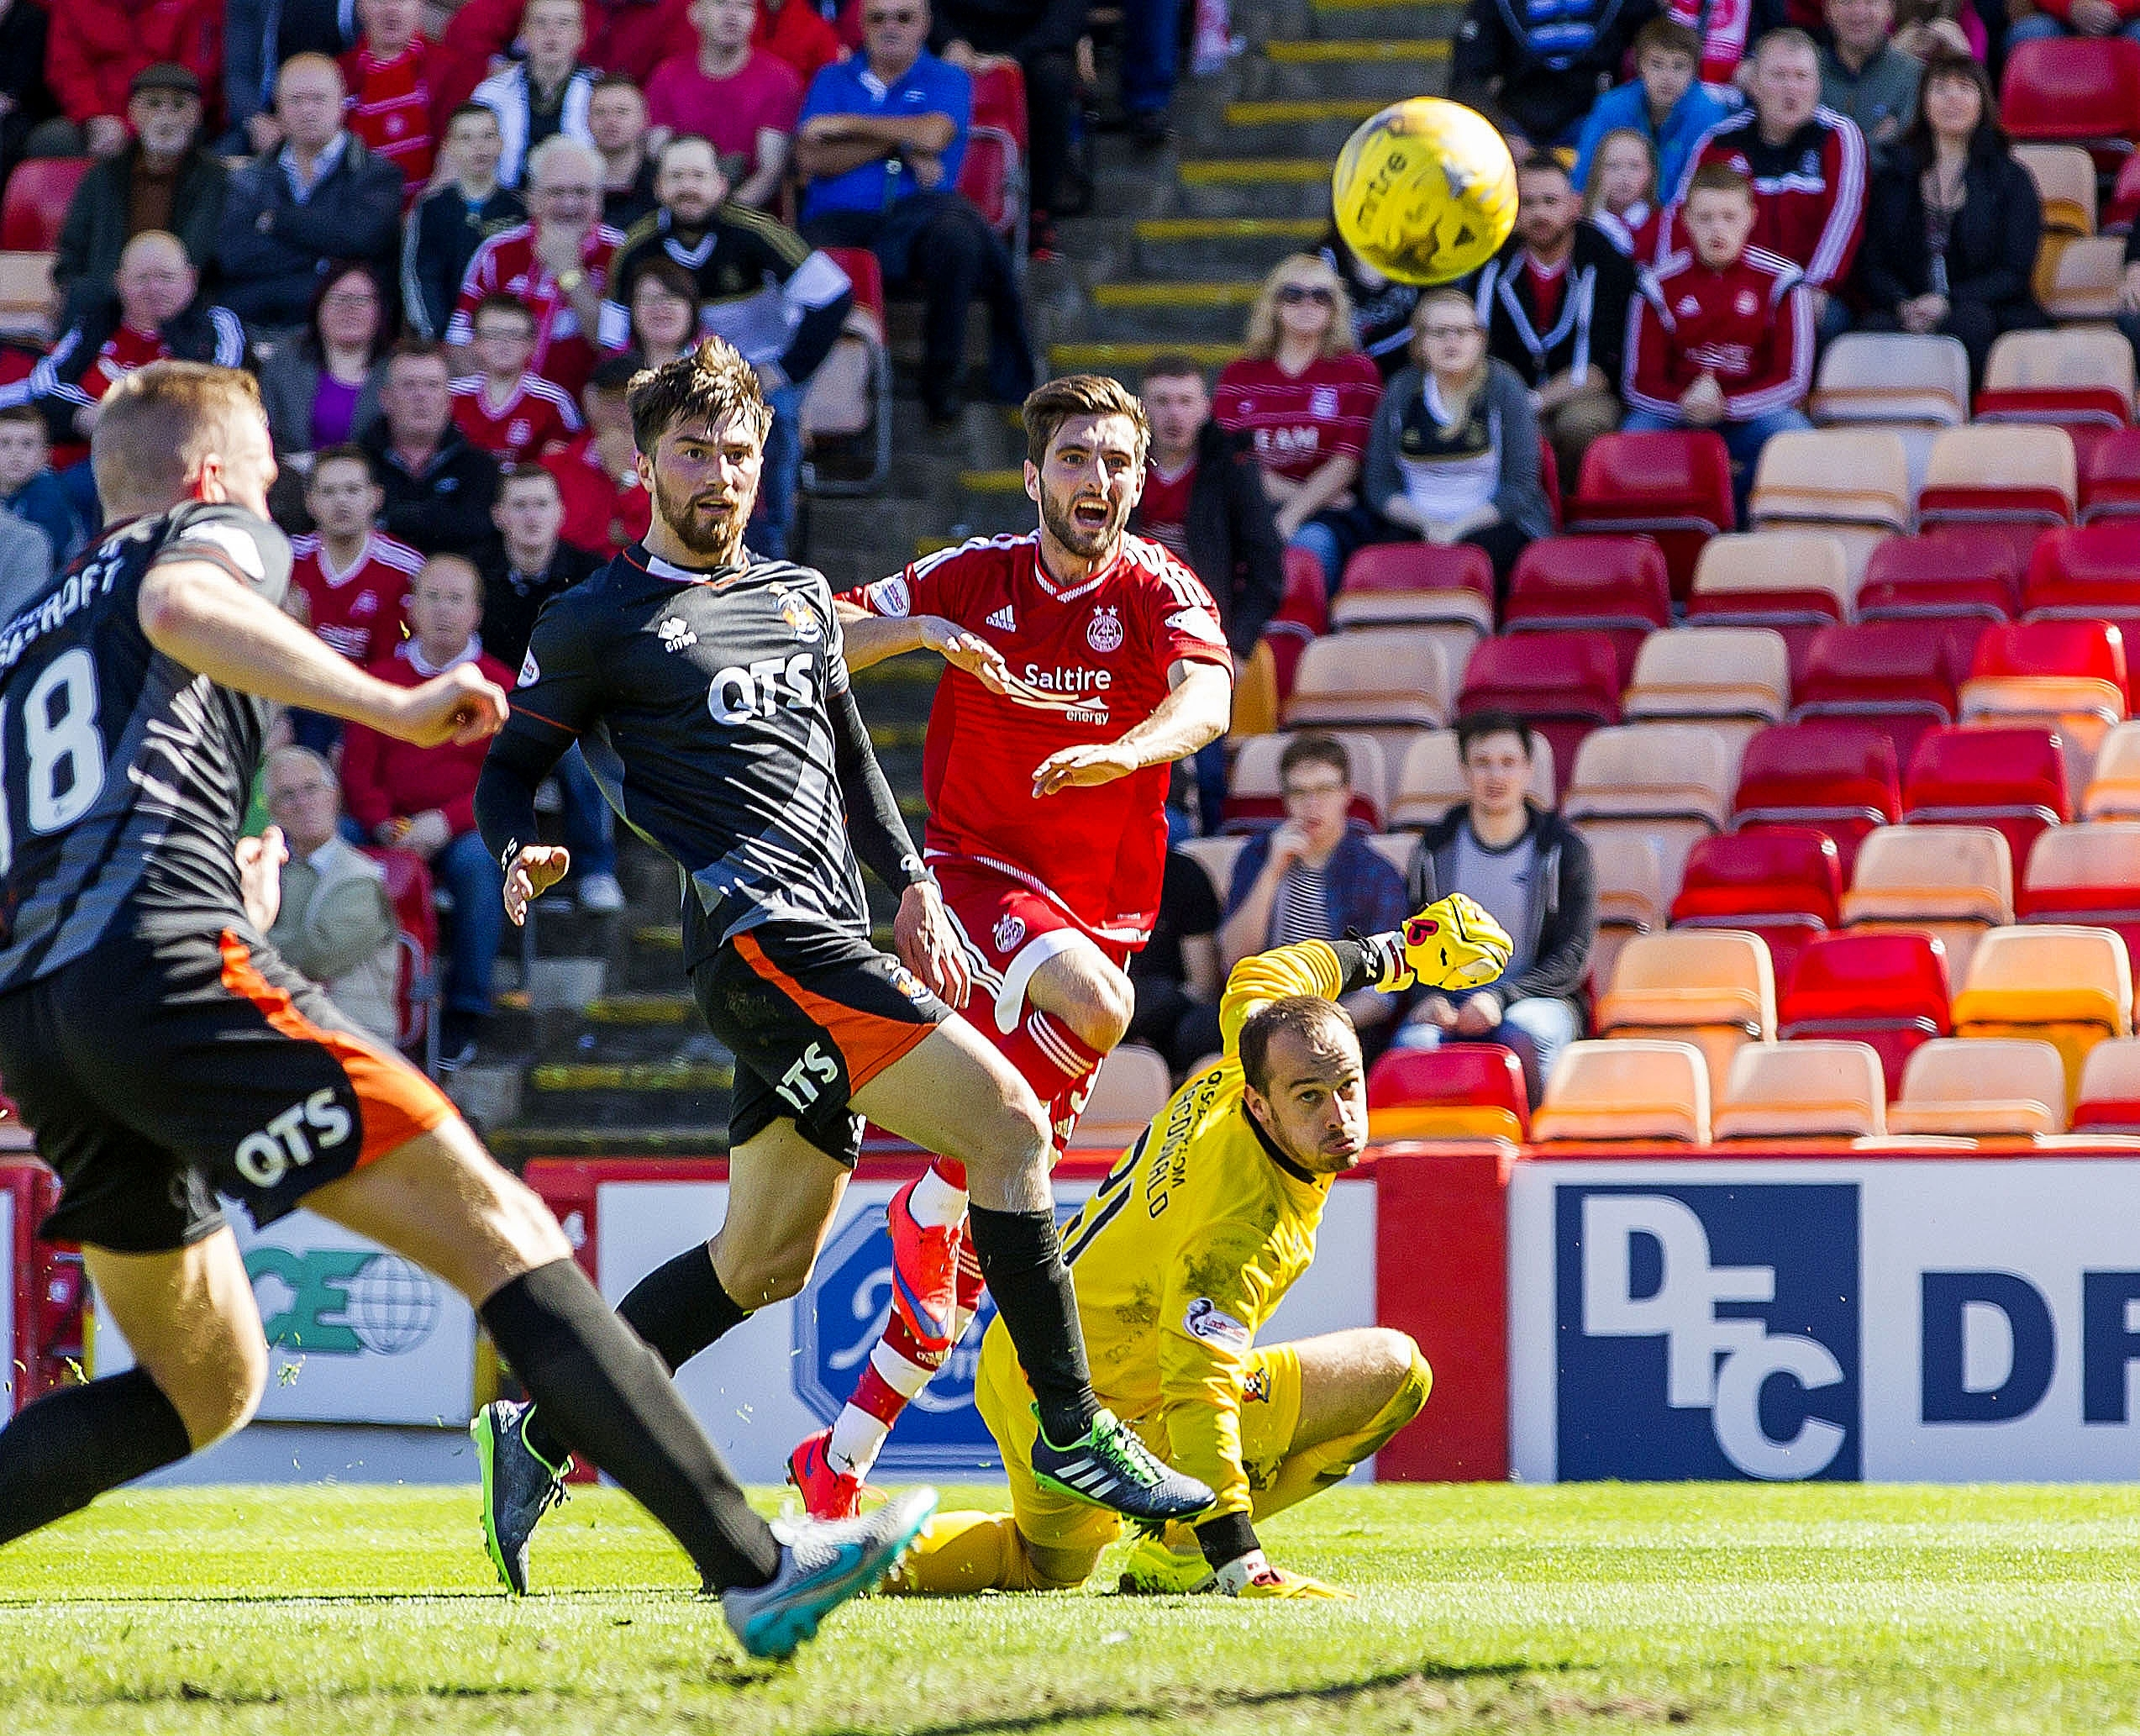 Graeme Shinnie believes the Dons have the firepower to trouble Celtic.